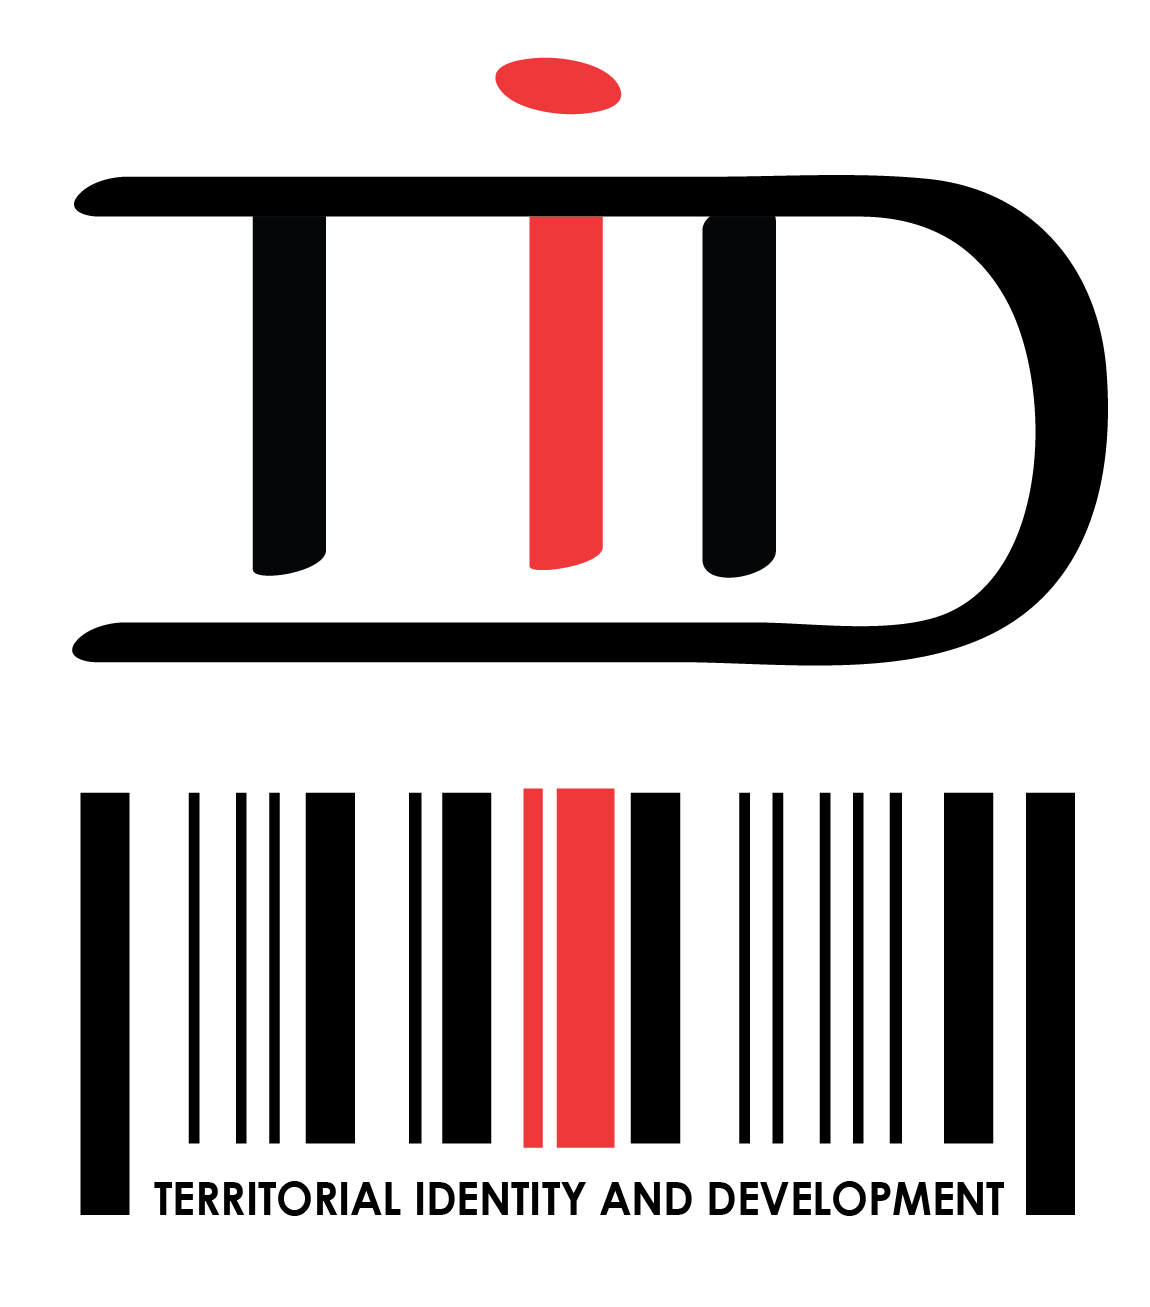 Territorial Identity and Development